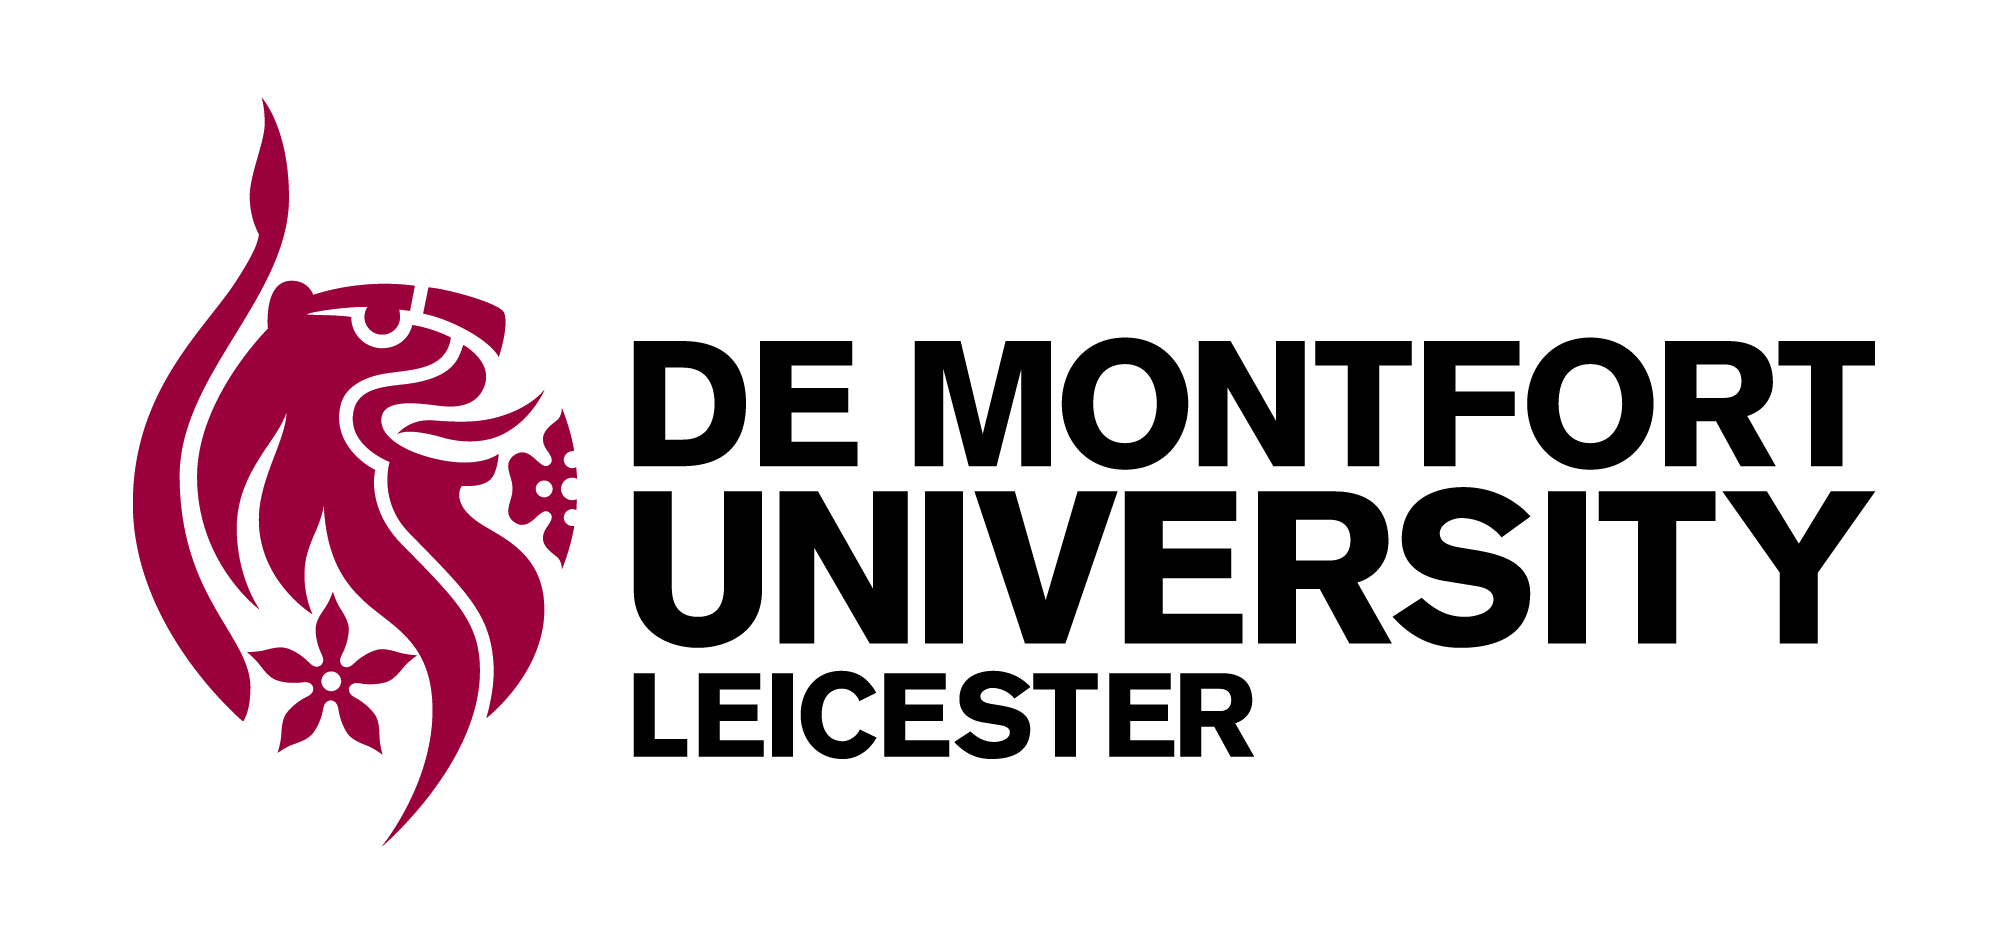 De Montfort University has been nominated for the Public Sector Equality Awards at the PinkNews Awards 2020